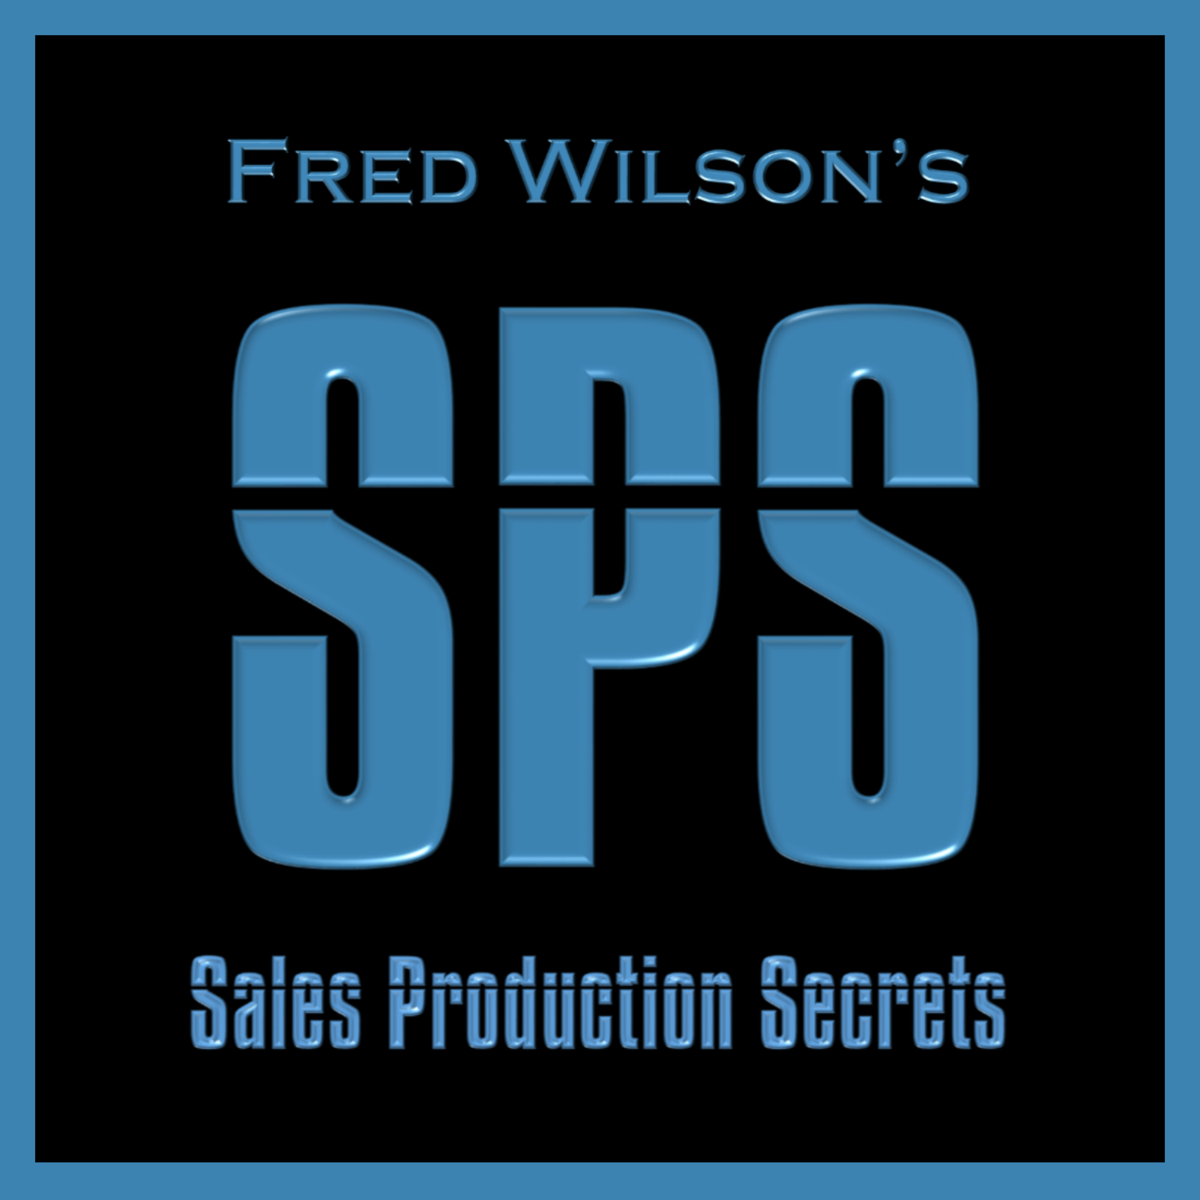 Fred Wilson's Sales Production Secrets™